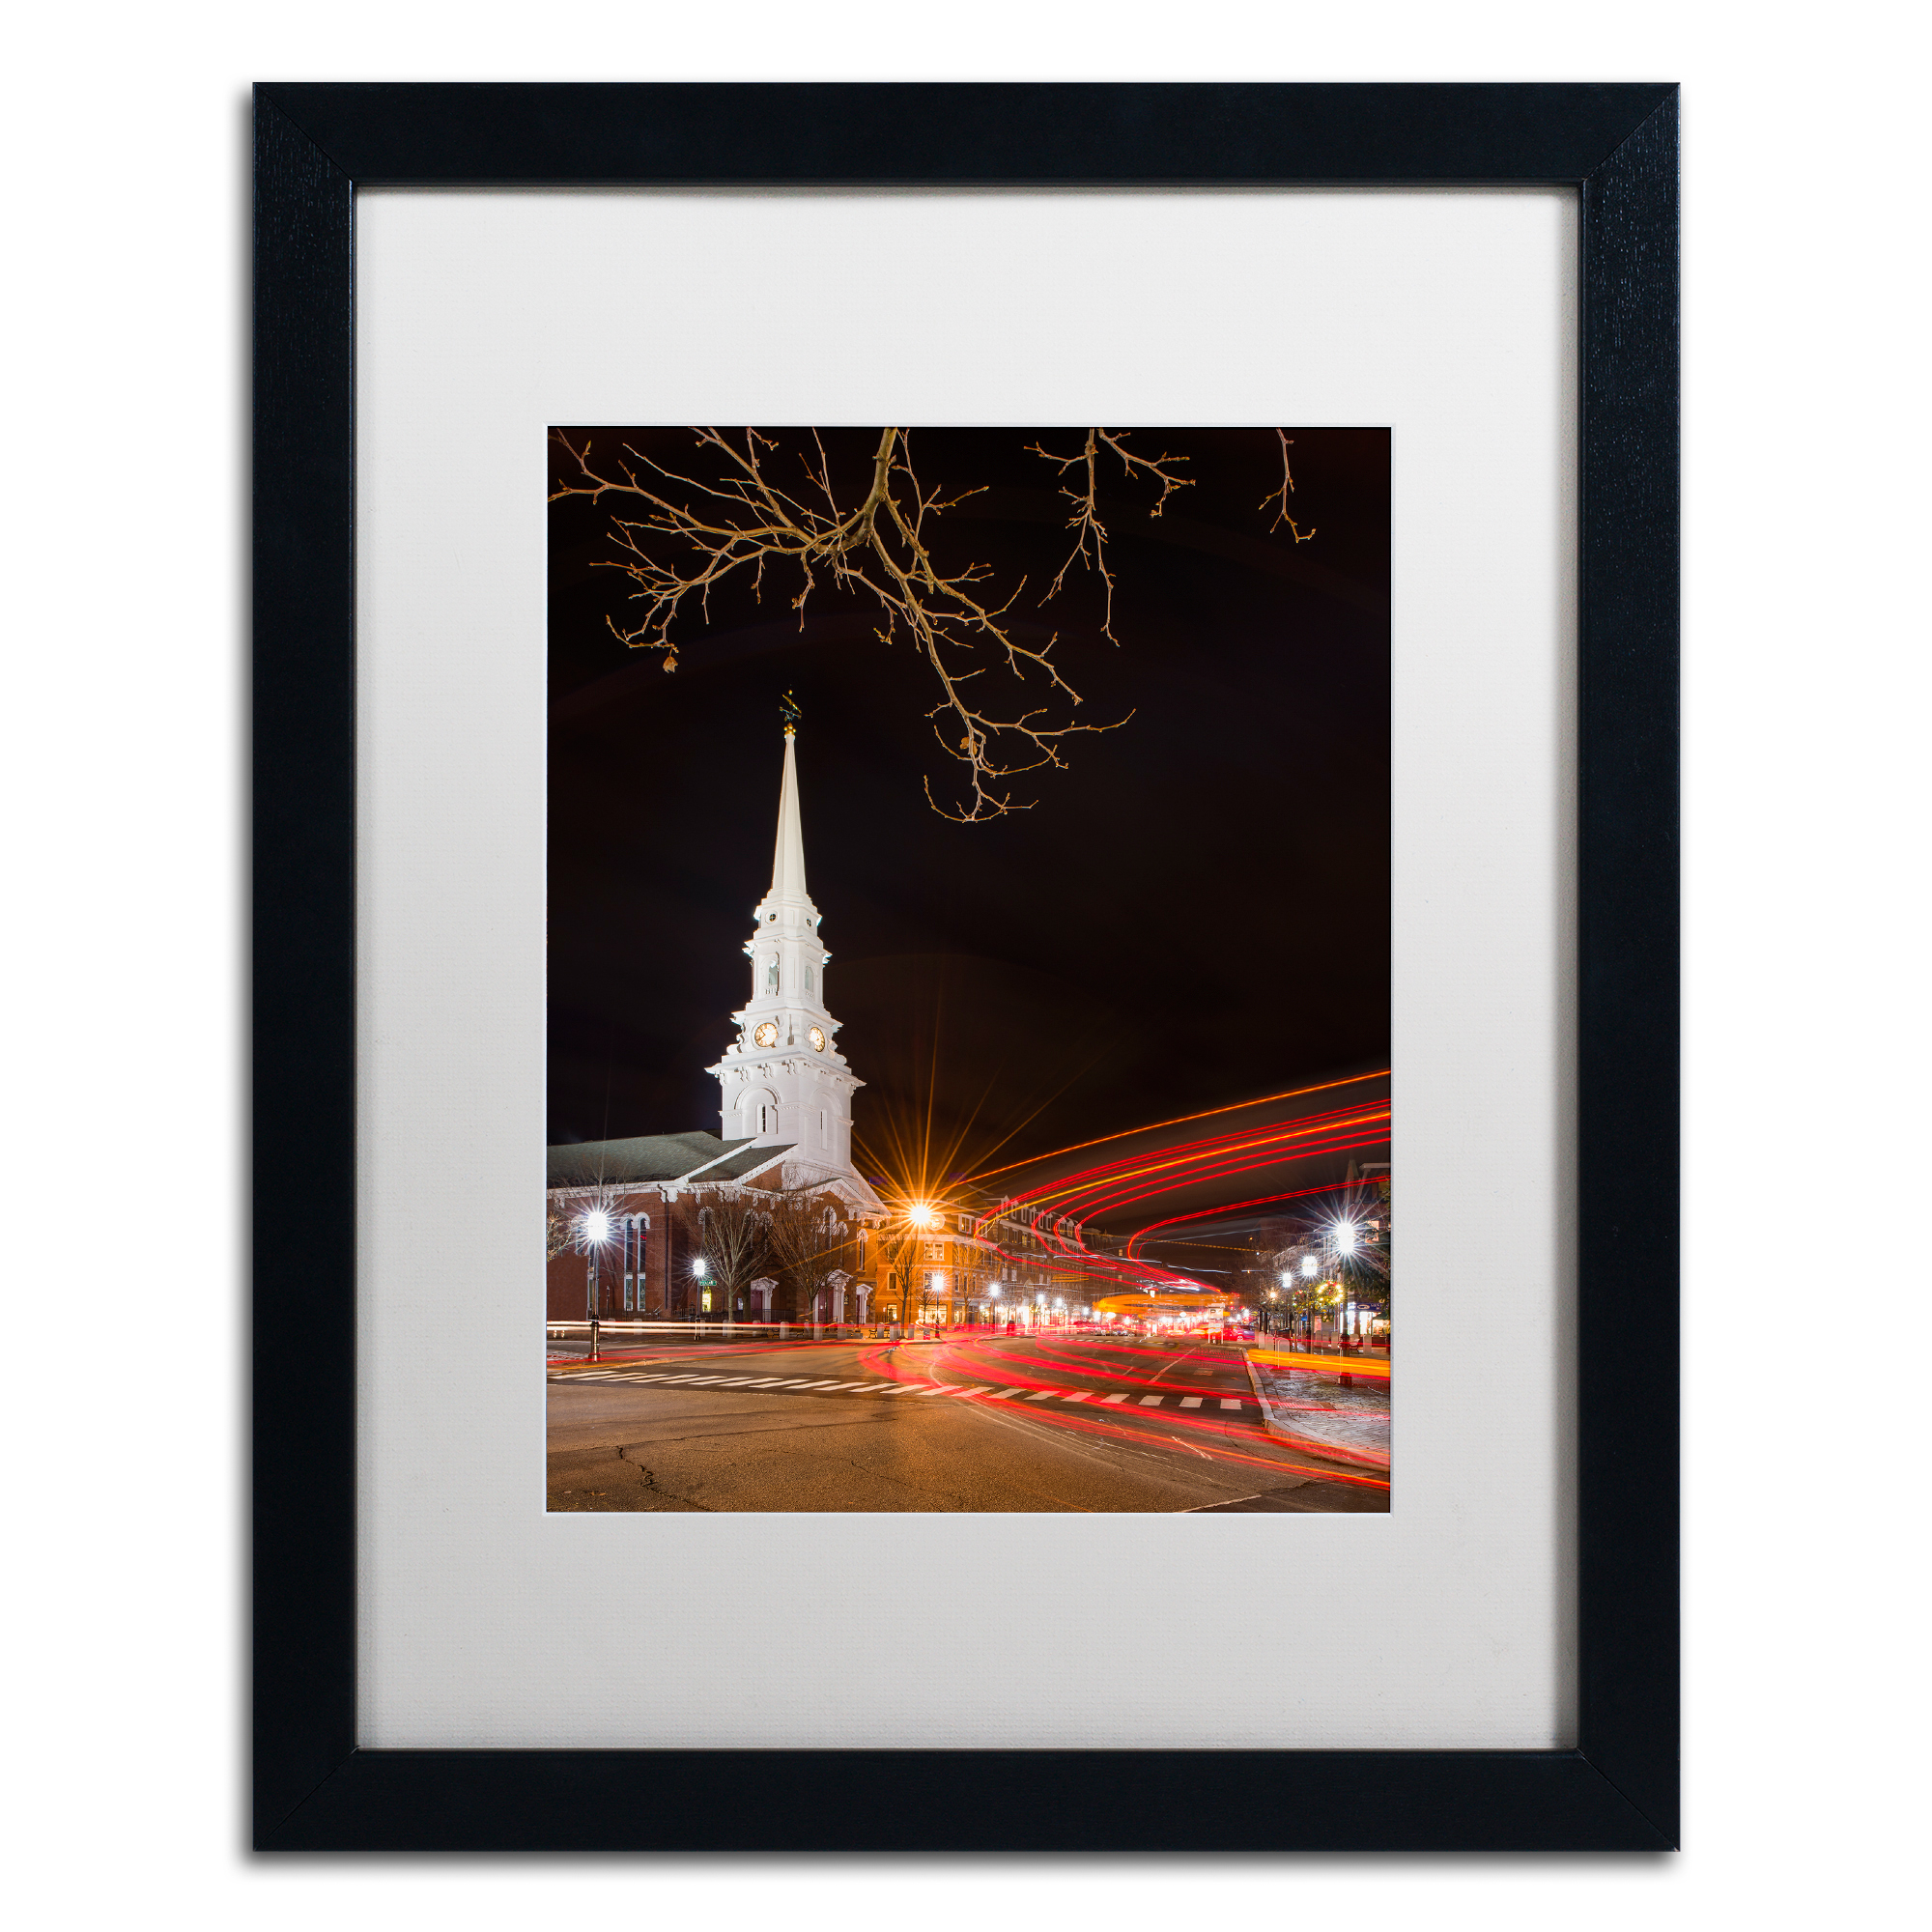 Michael Blanchette Photography 'Street Lights' Black Wooden Framed Art 18 x 22 Inches